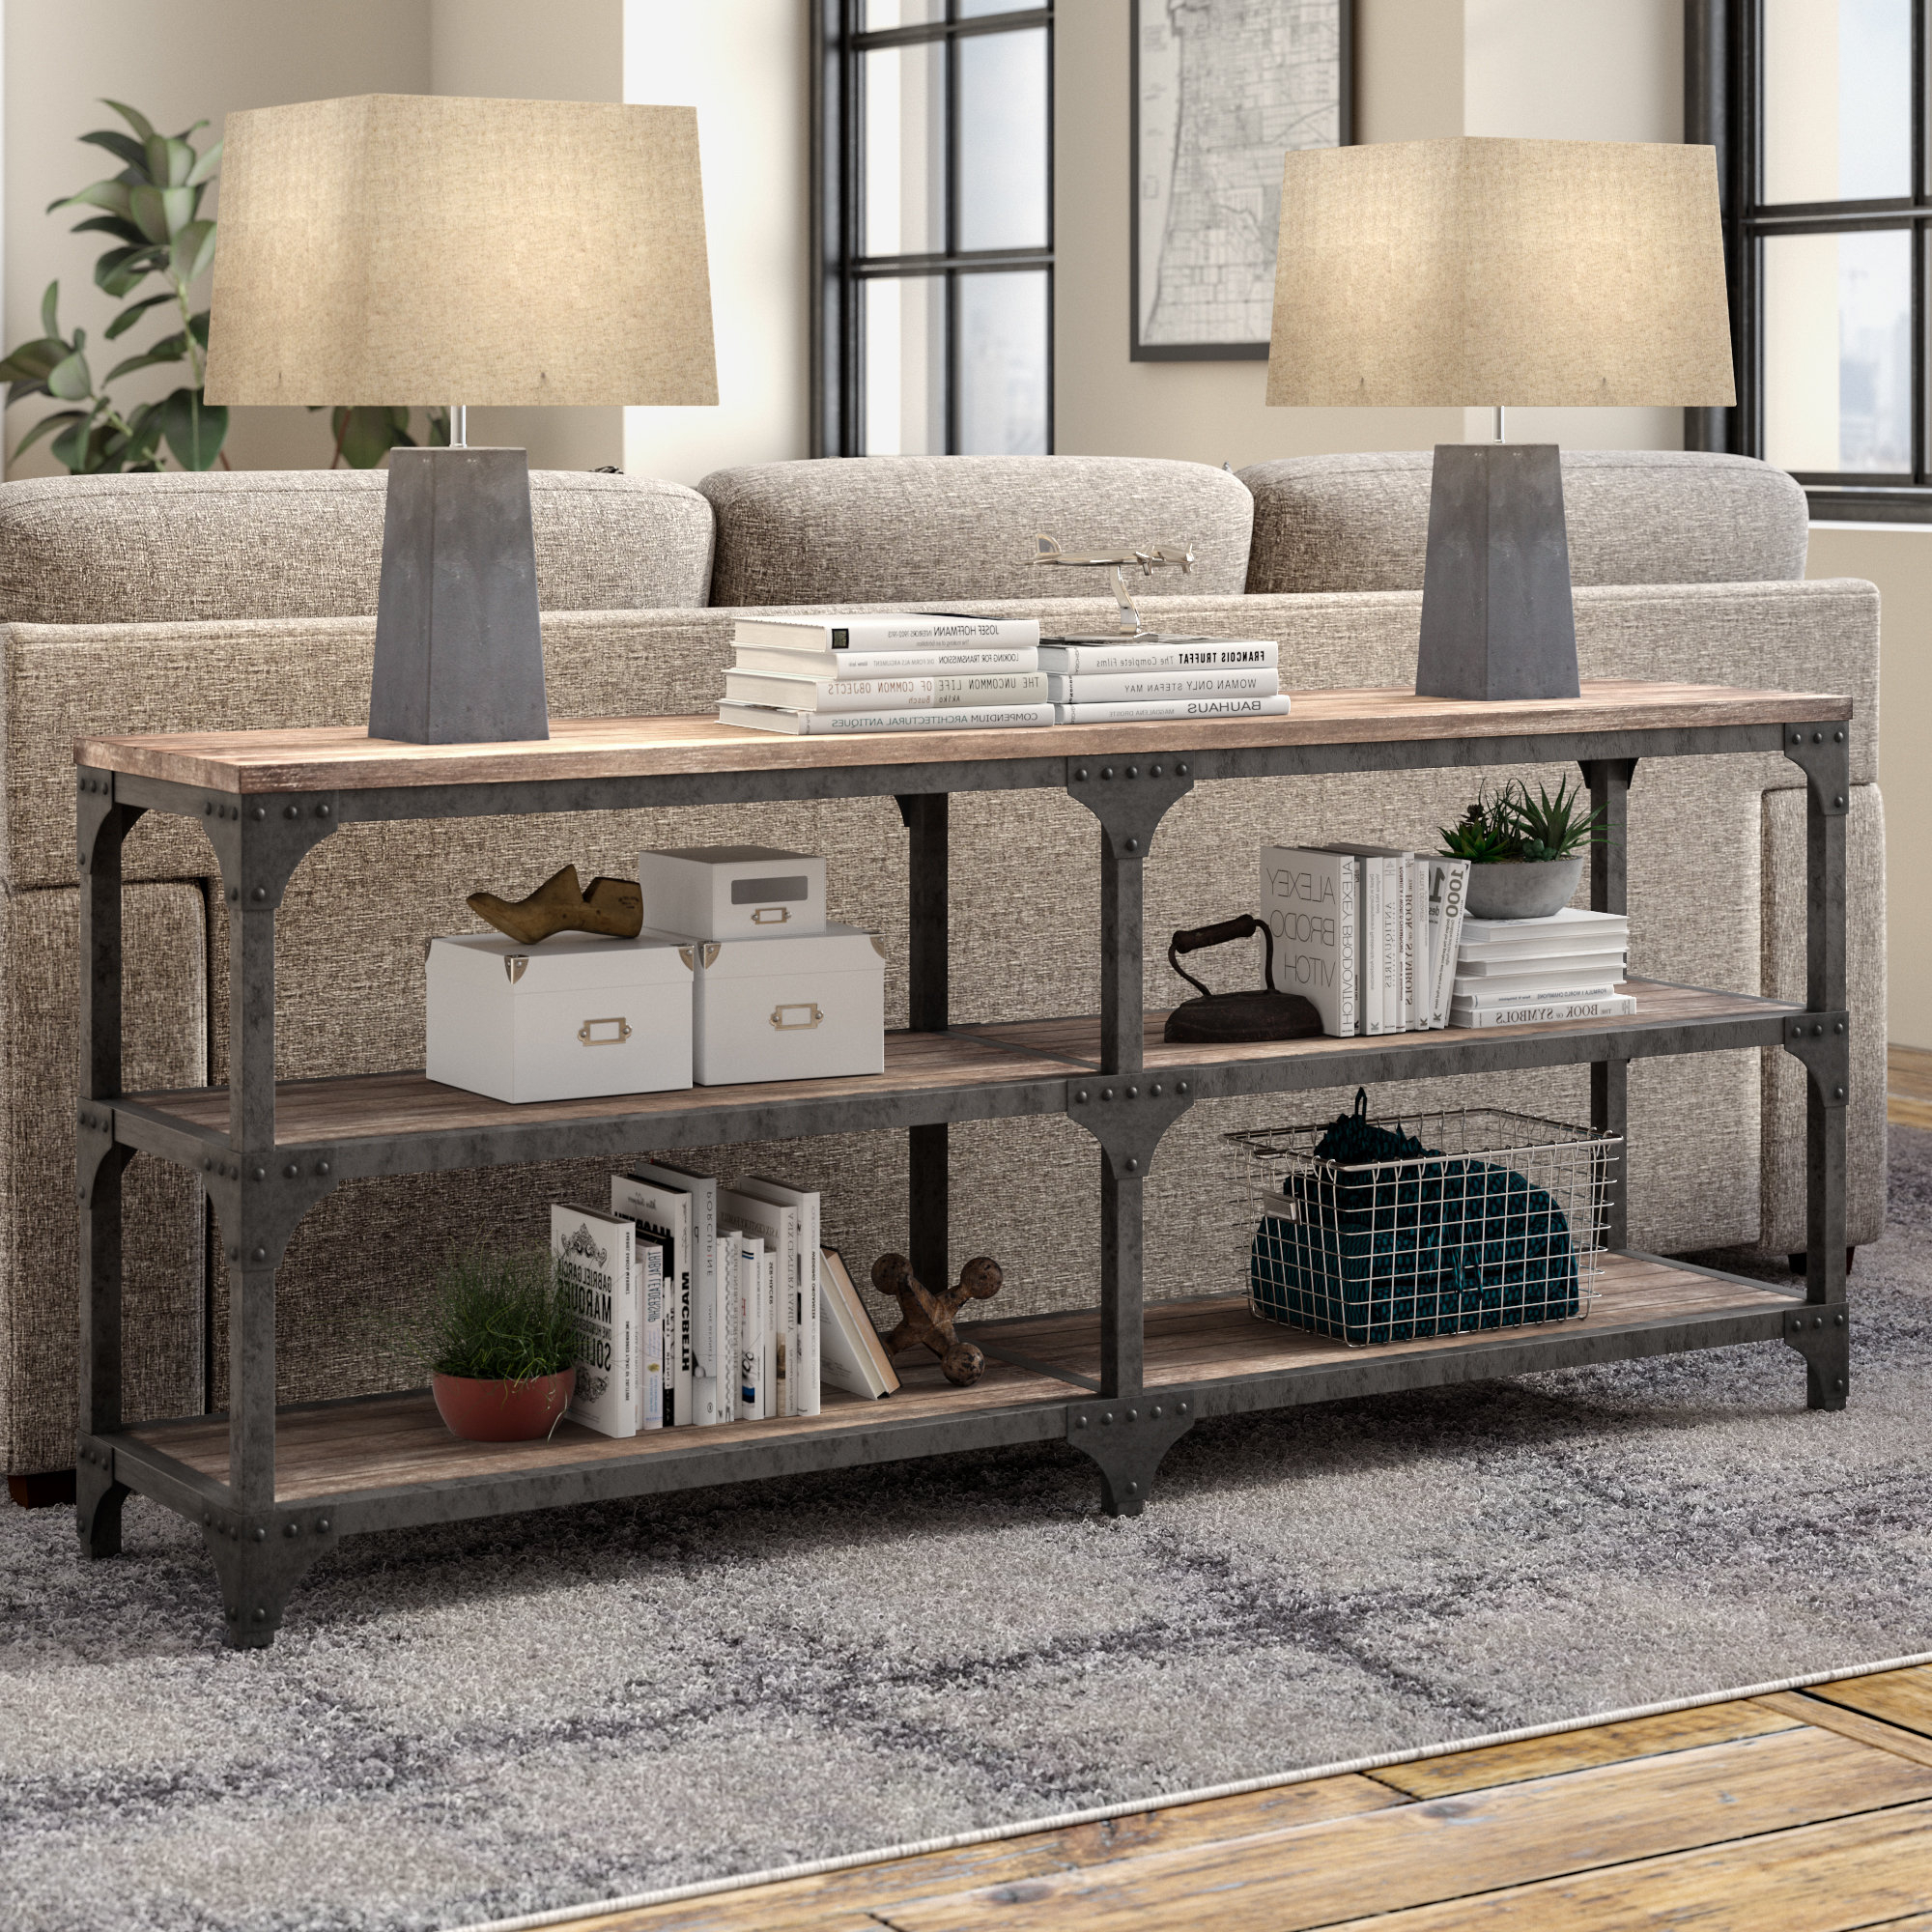 Industrial Console Tables You'll Love | Wayfair With Regard To Roman Metal Top Console Tables (Gallery 14 of 20)